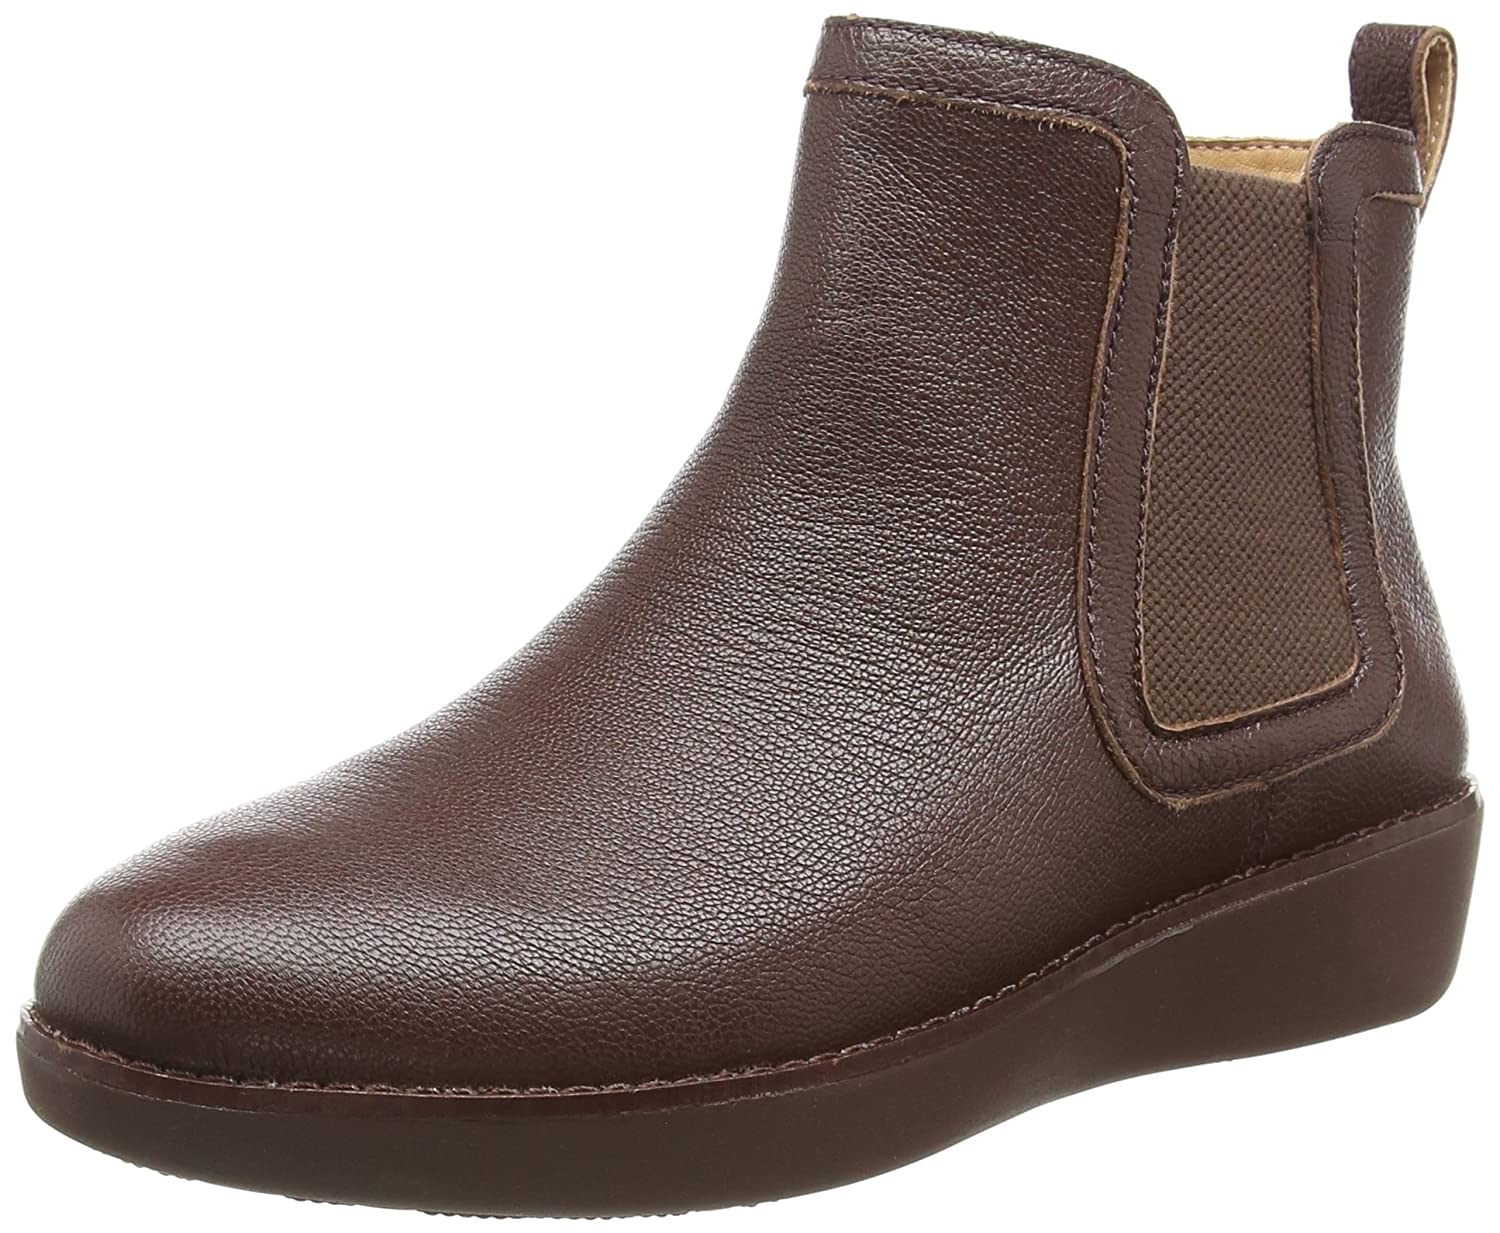 FitFlop Trade; Chai™ Leather Chelsea Boots B0792JF8TT 8 B(M) US|Espresso